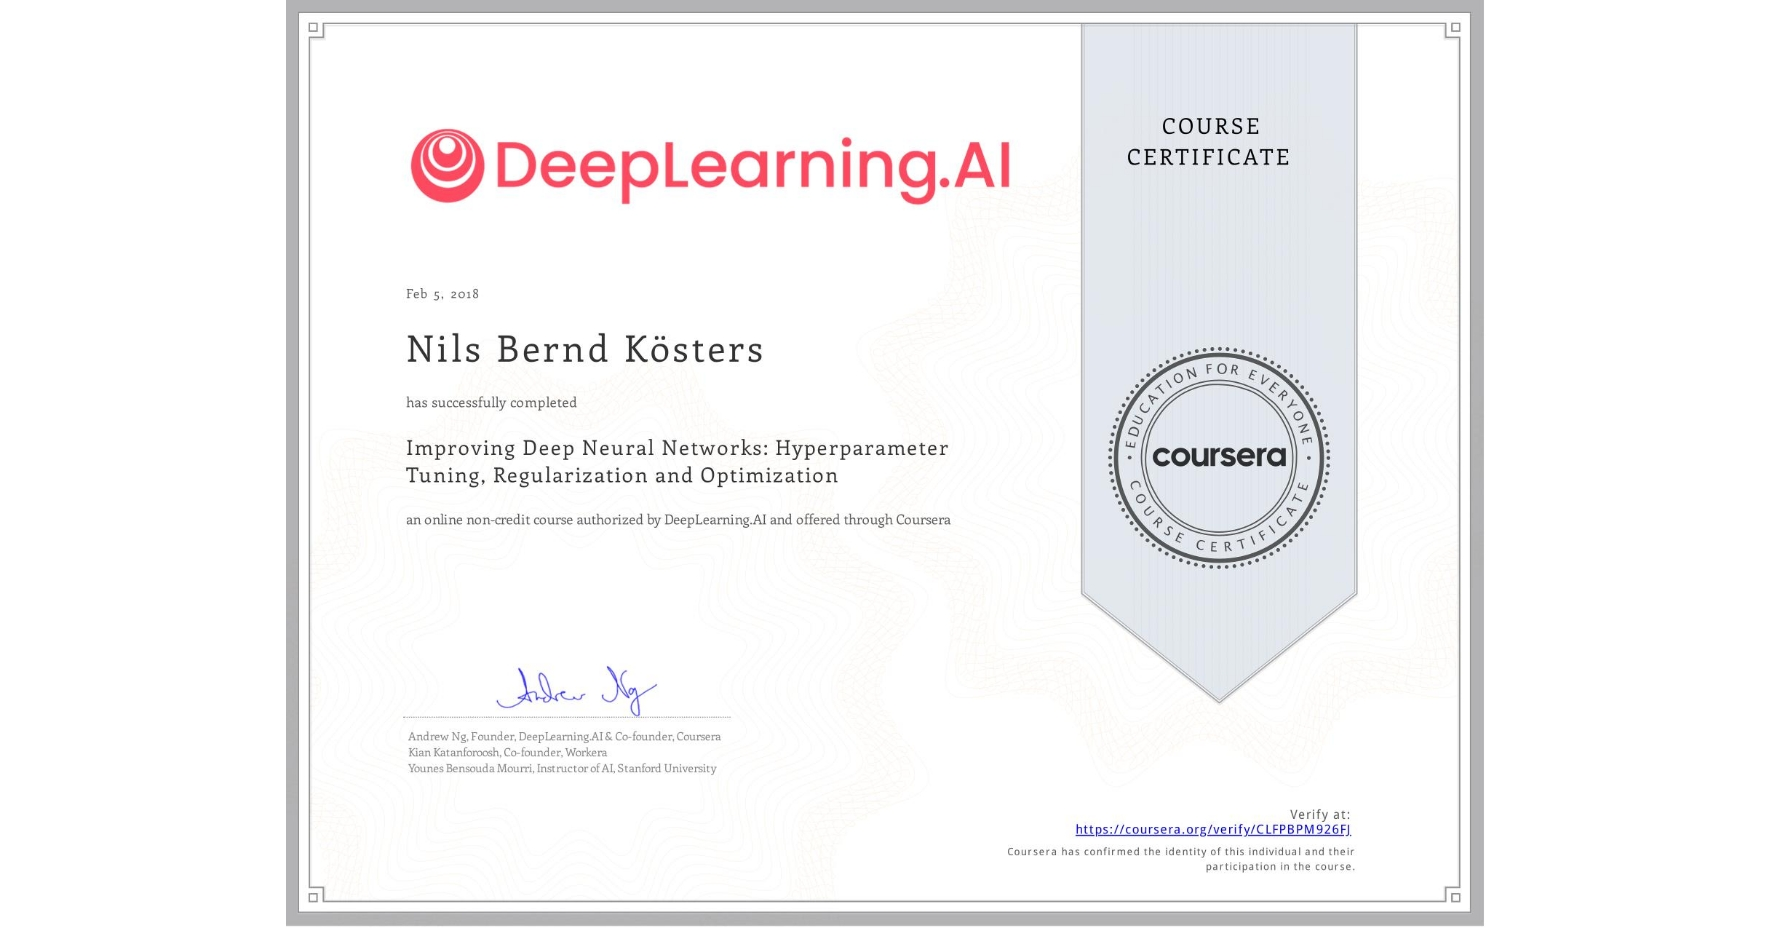 View certificate for Nils Bernd Kösters, Improving Deep Neural Networks: Hyperparameter Tuning, Regularization and Optimization, an online non-credit course authorized by DeepLearning.AI and offered through Coursera